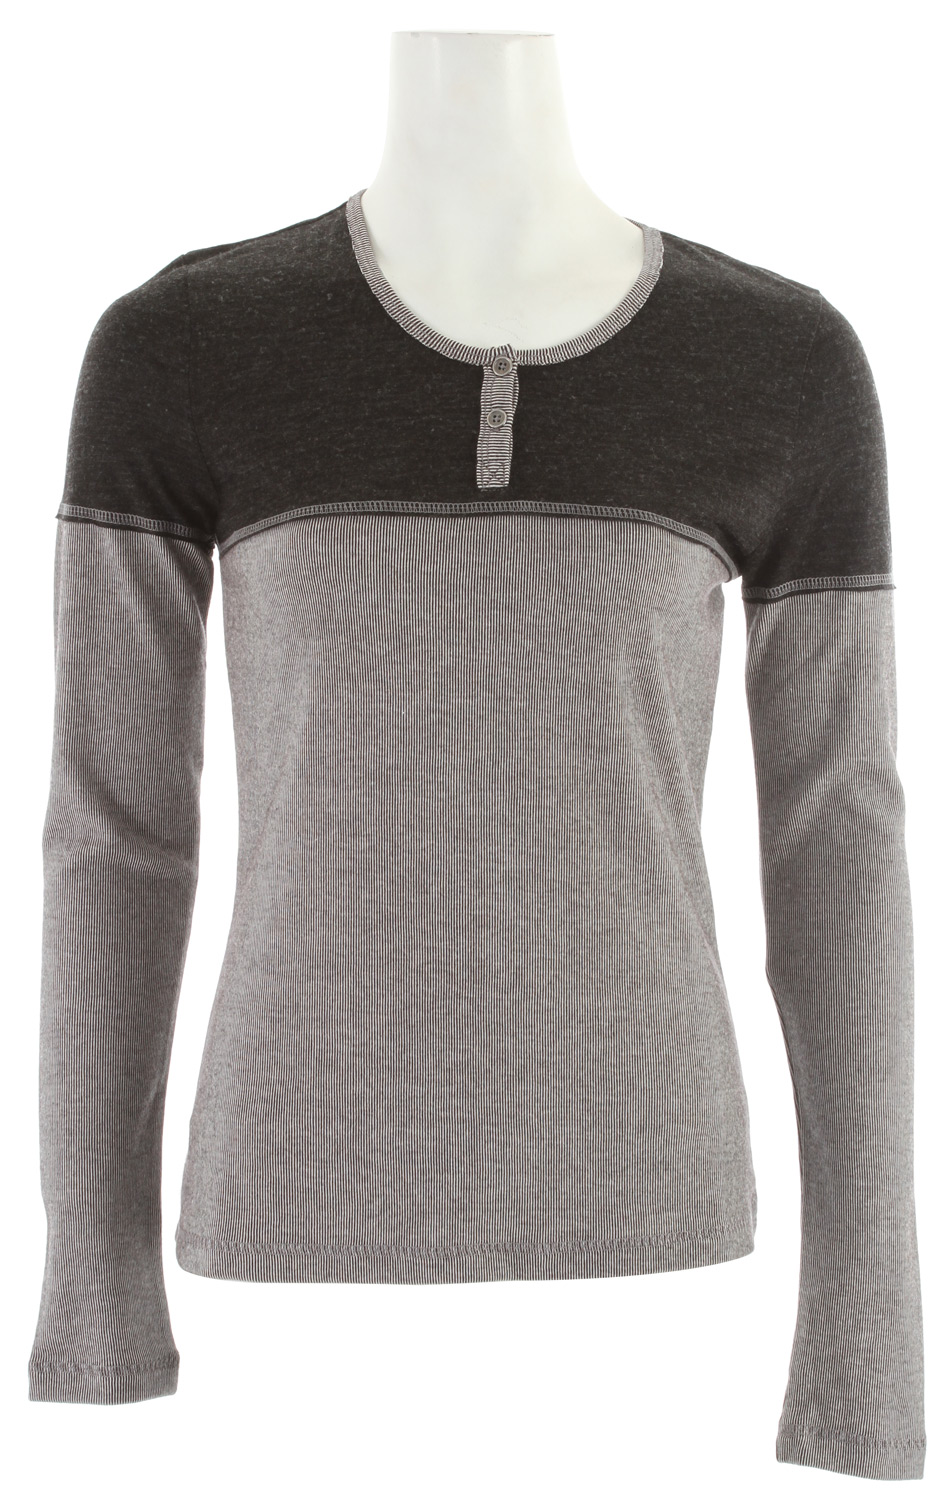 The Pippa's faux shrug shoulders and narrow vertical stripes will lengthen and emphasize slender frames. Soft cotton and wool will keep you comfortable on evening hikes in the woods.Key Features of the Prana Pippa Shirt:  Cotton poly blend, mini stripe top with coordinating wool blend yoke  Reverse coverstitch along collar, yoke, and placket  Raw edge detailing on collar  Body:  70% Cotton / 30% Polyester  Contrast yoke:  70% Acrylic / 30% Wool - $32.95